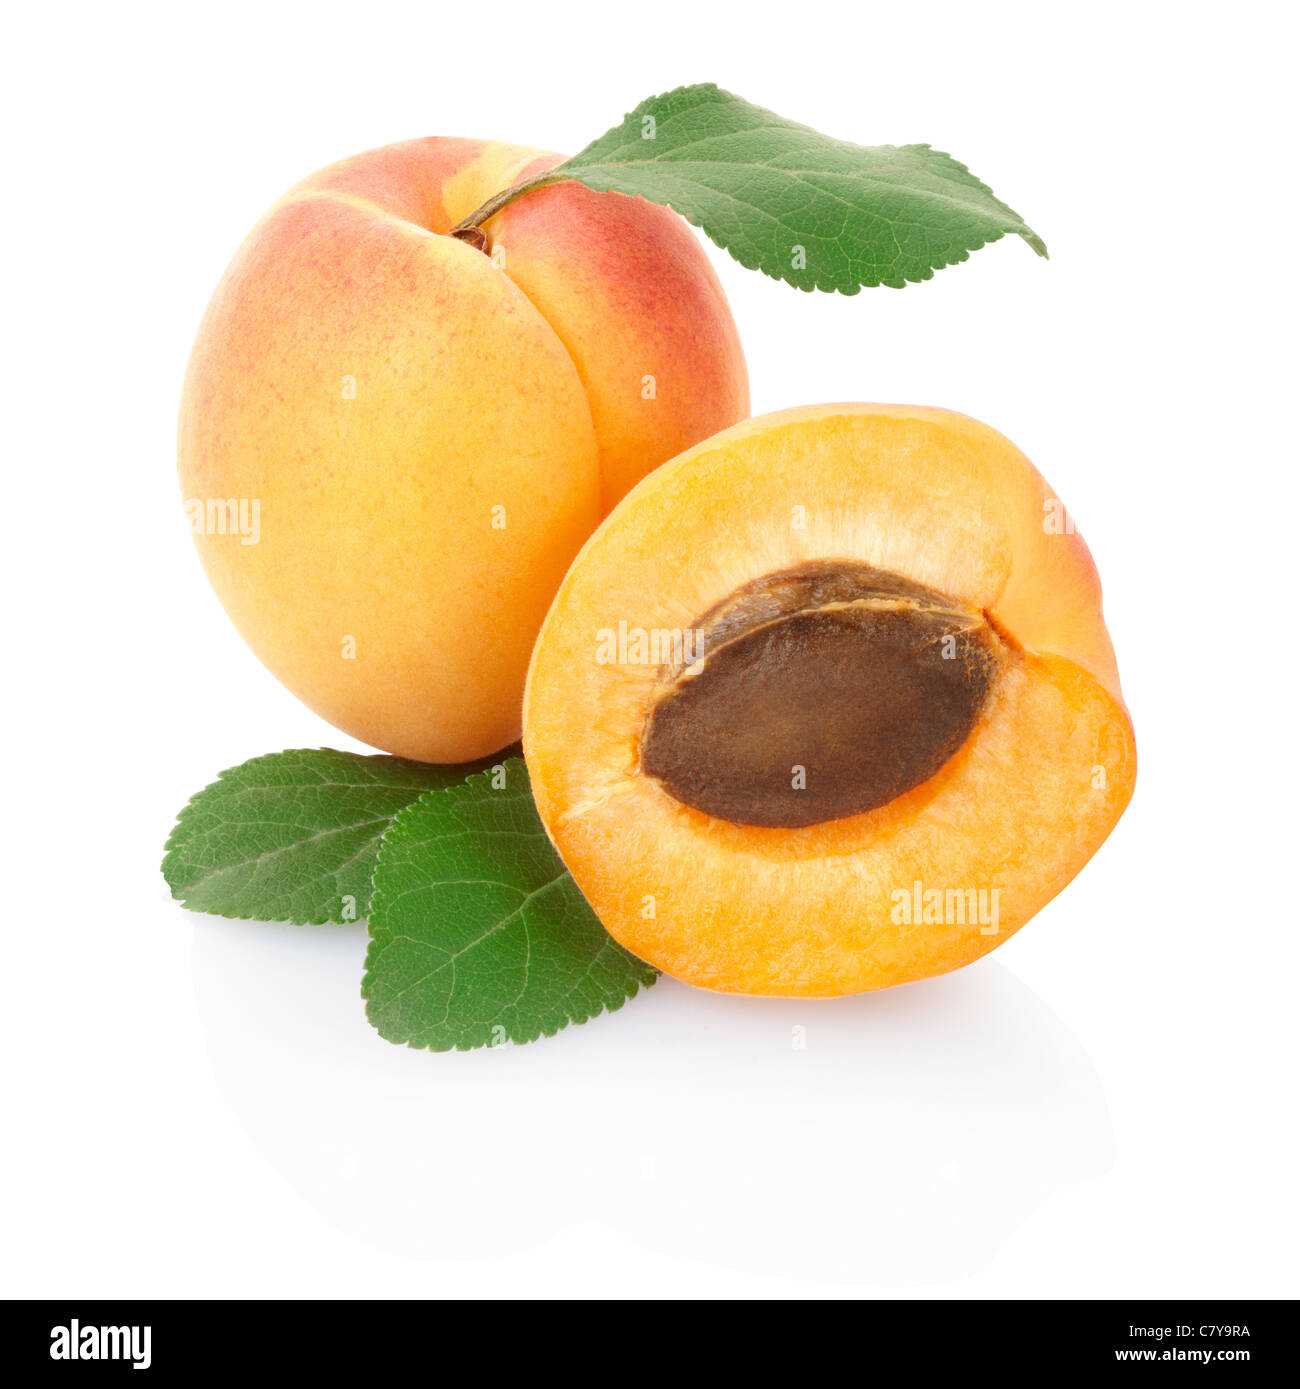 Apricot with leaves - Stock Image